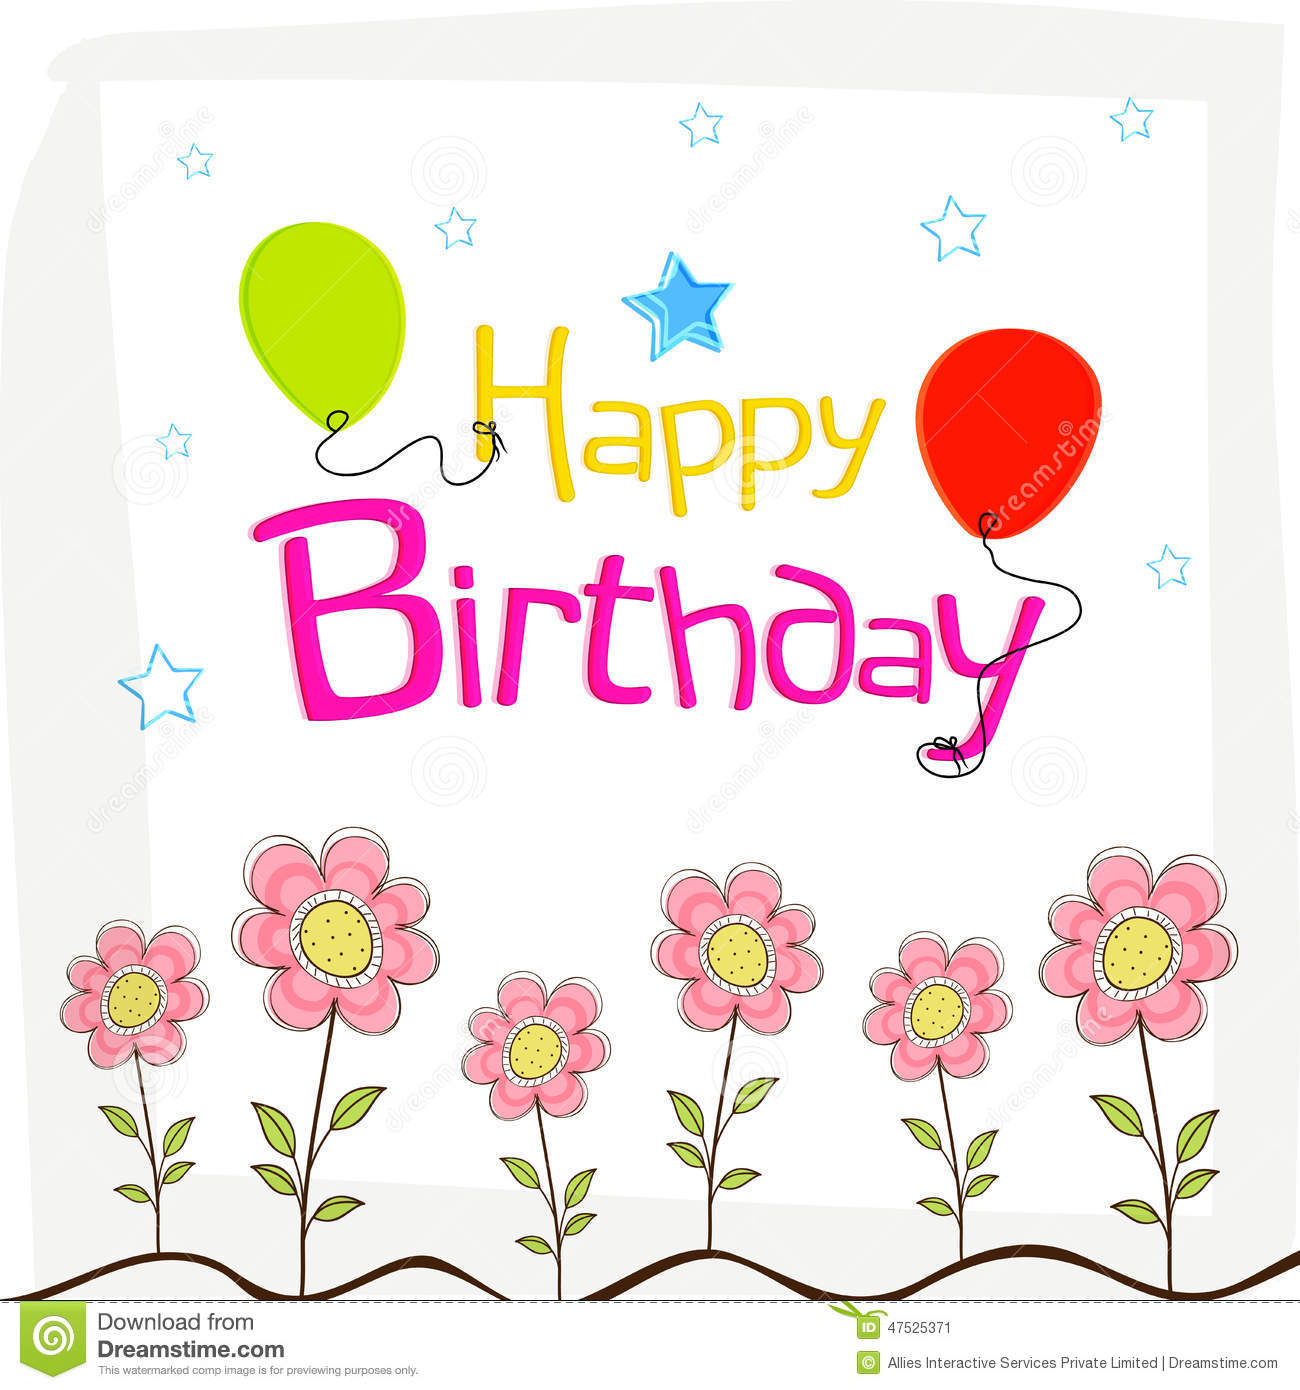 Carte Cadeau Wish Happy Birthday Wishes Poster Design With Decoration Stock